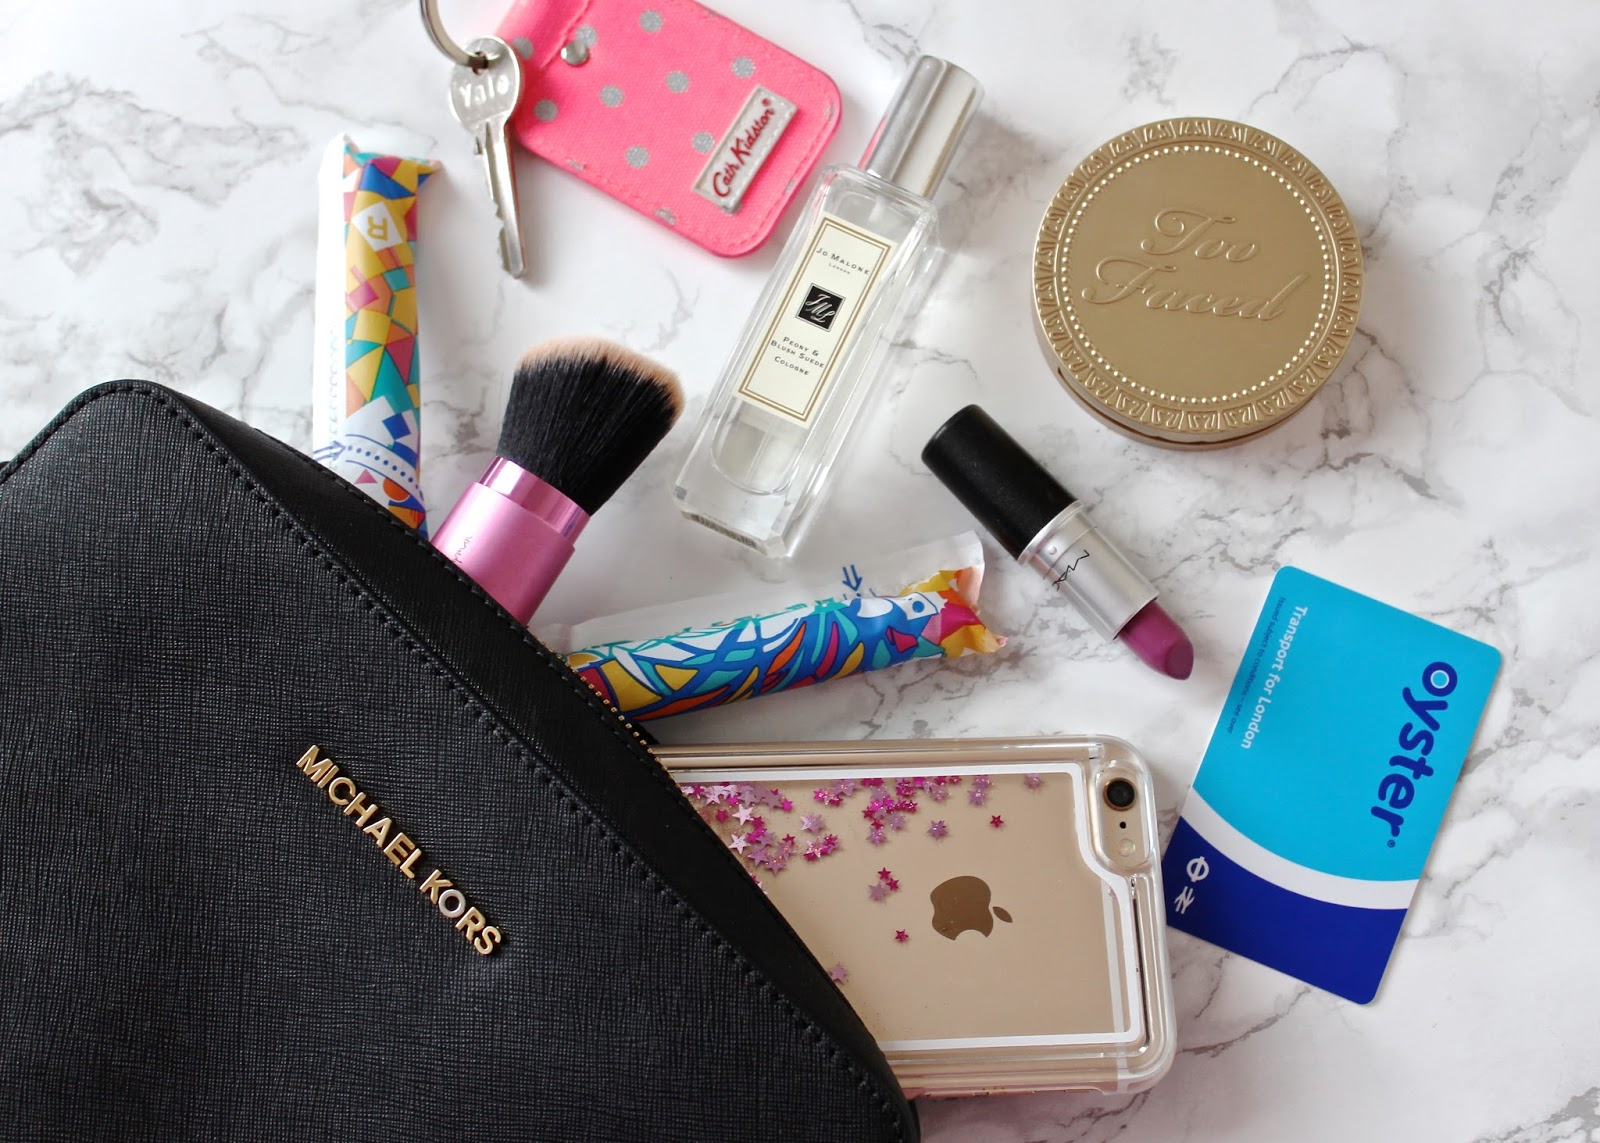 Beauty Hacks E Saving Tips For Your Night Out Handbag Essentials With Tampax Compak Pearl